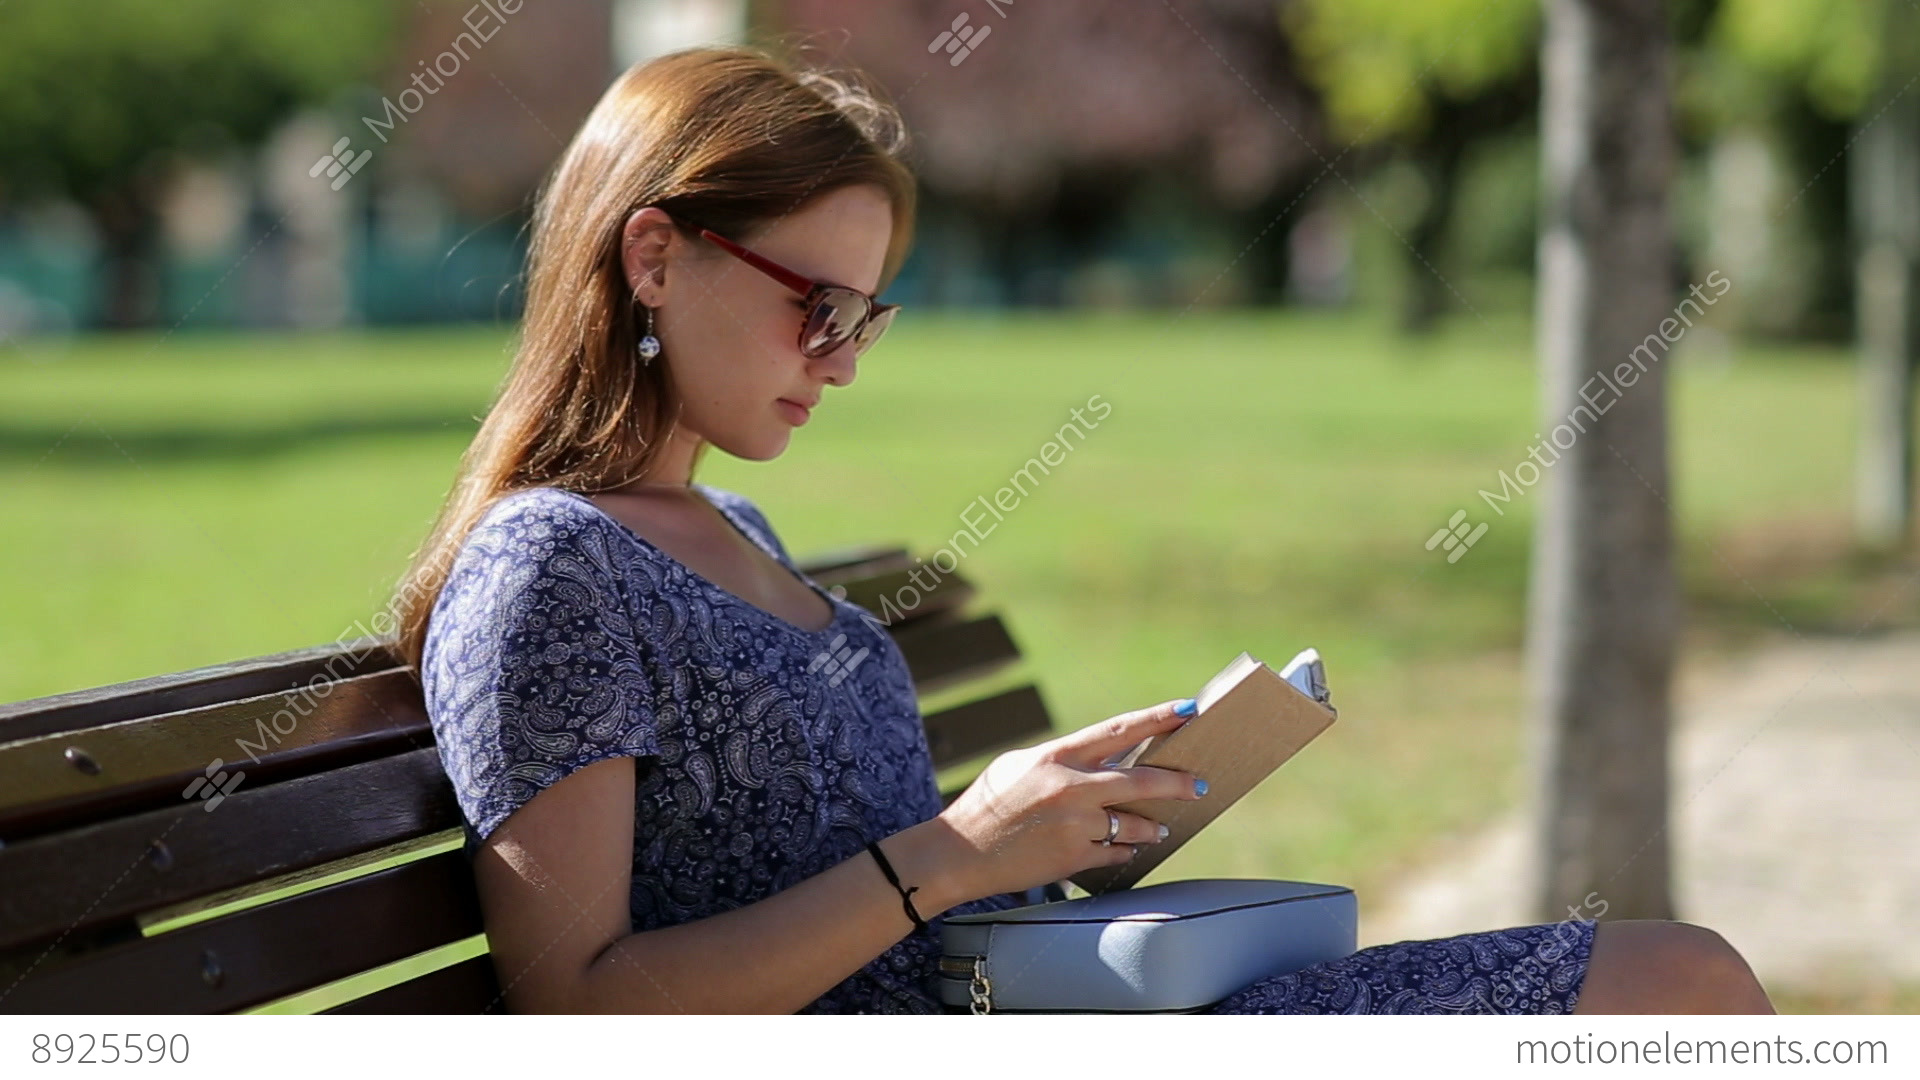 young woman reading a book and sitting on a bench outside in a park